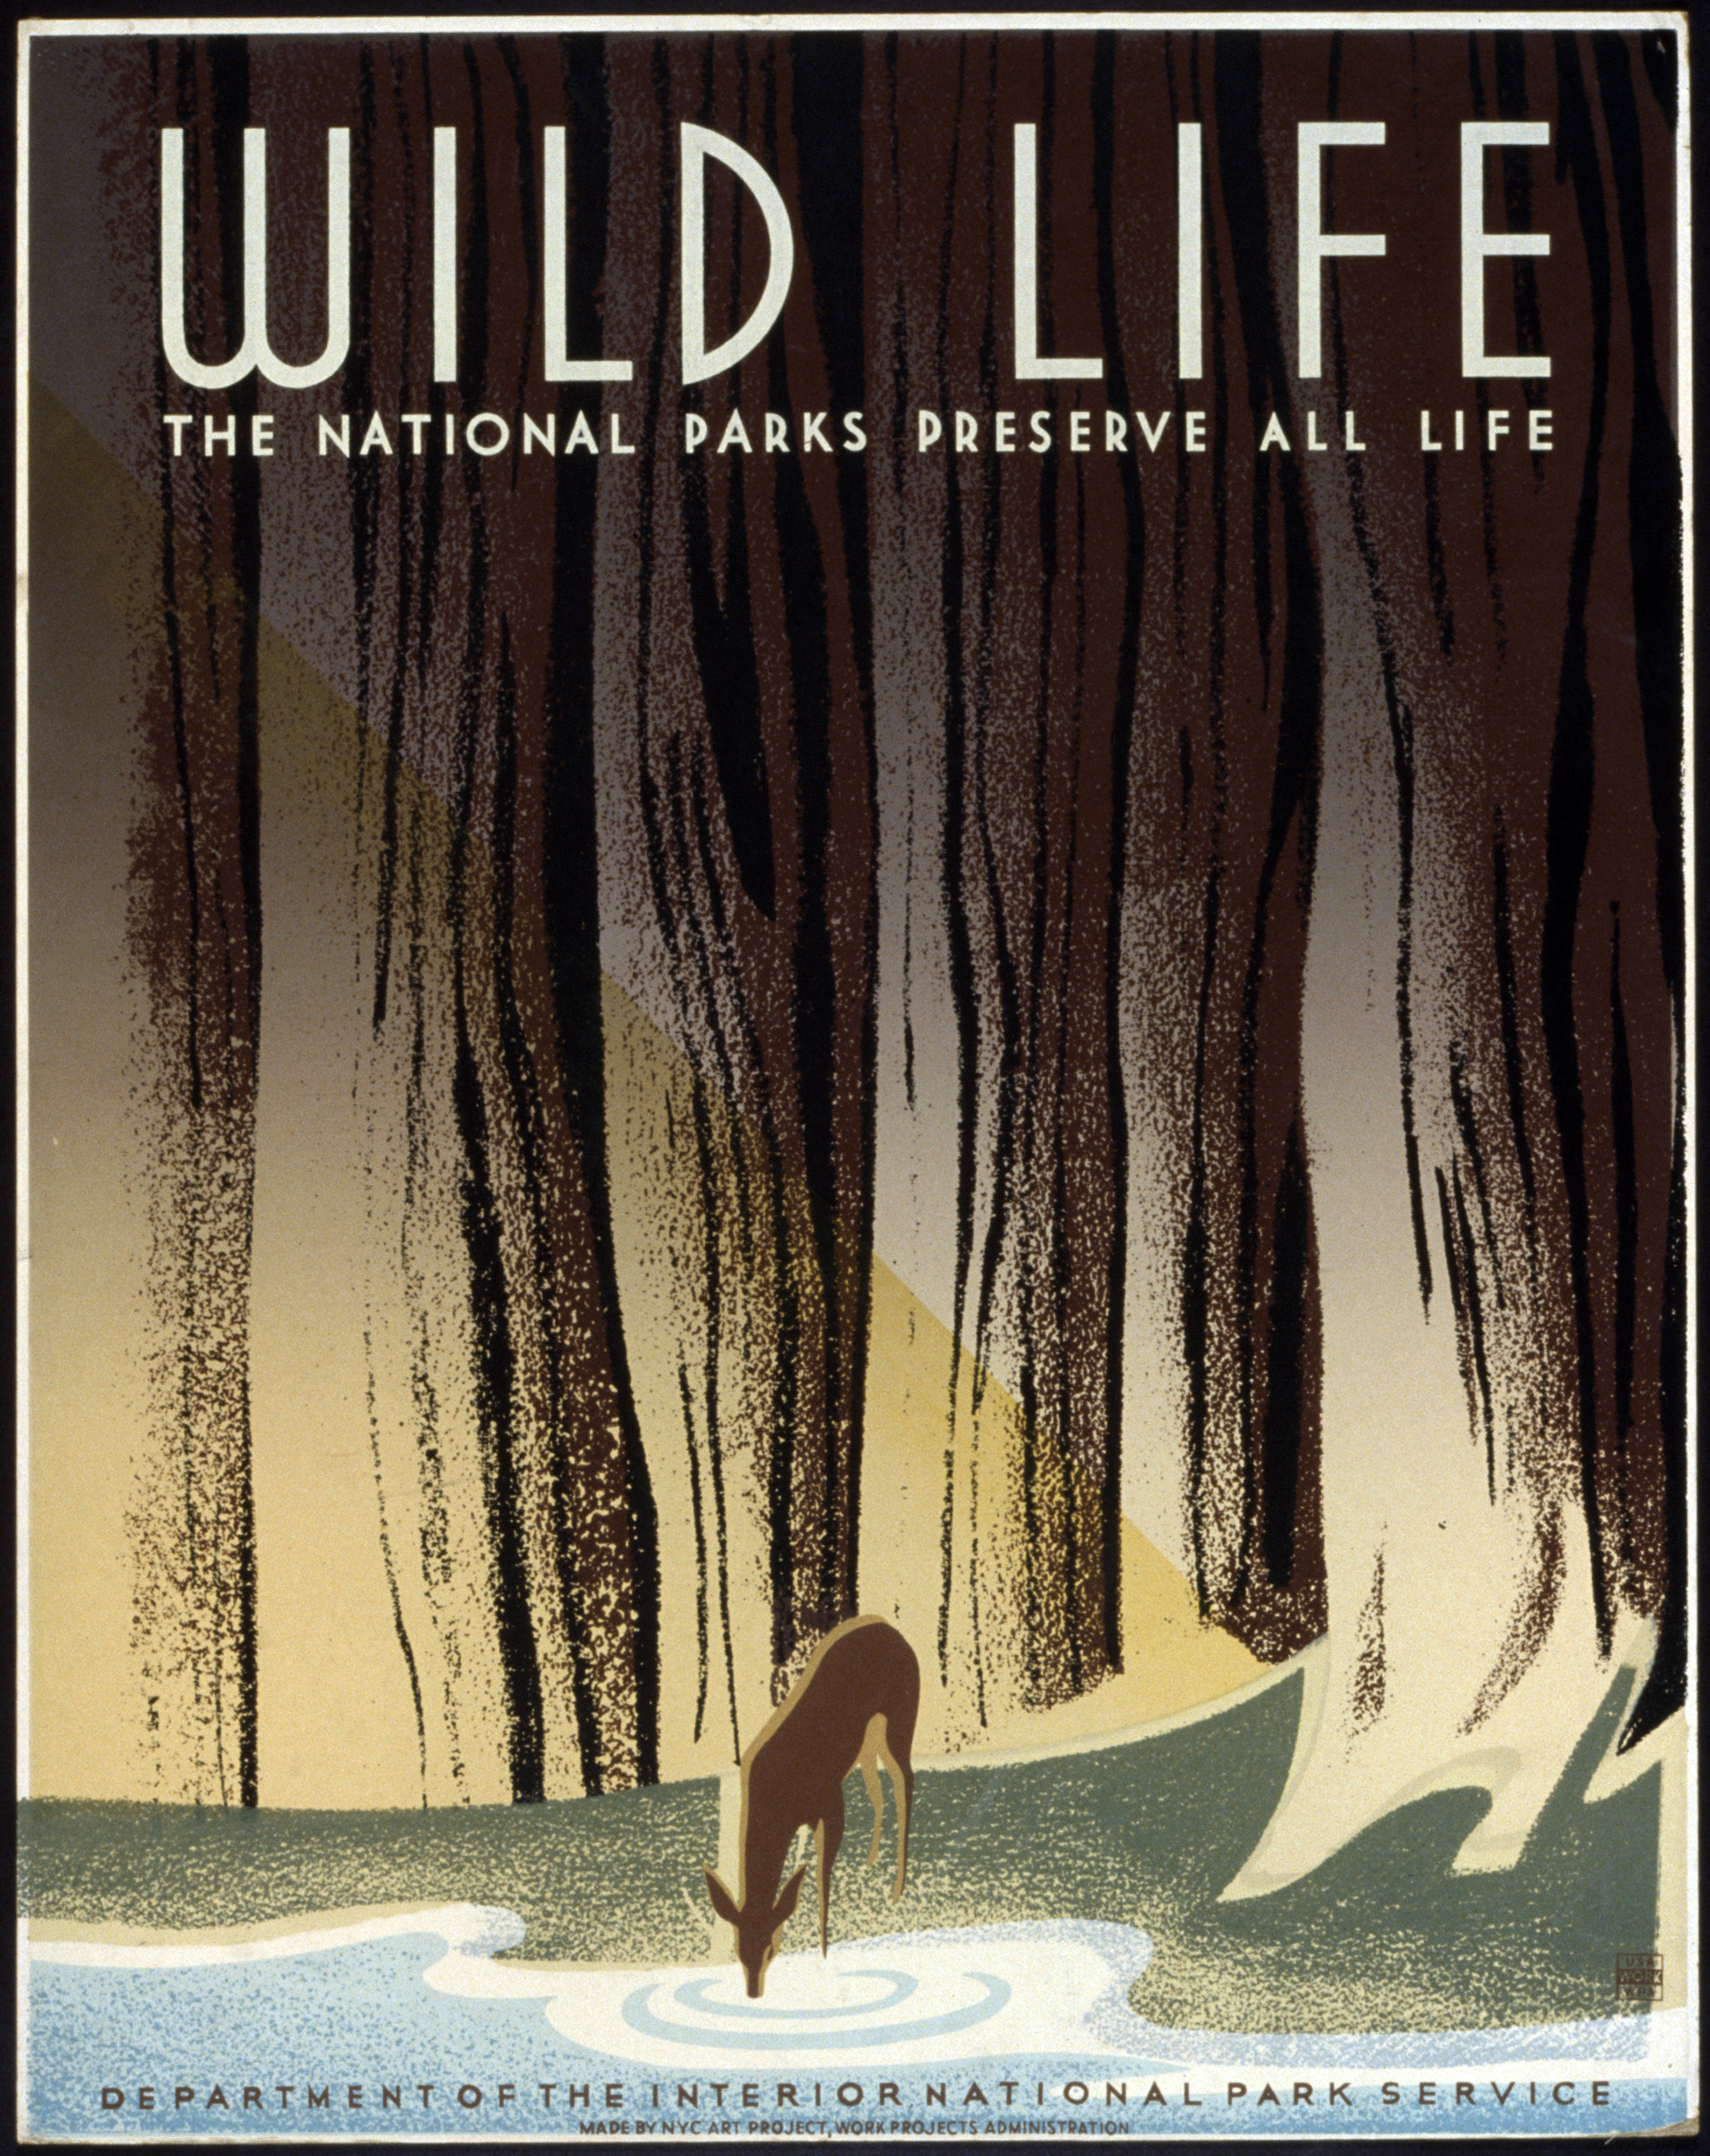 Wild life The national parks preserve all life poster, ca. 1936-1940.